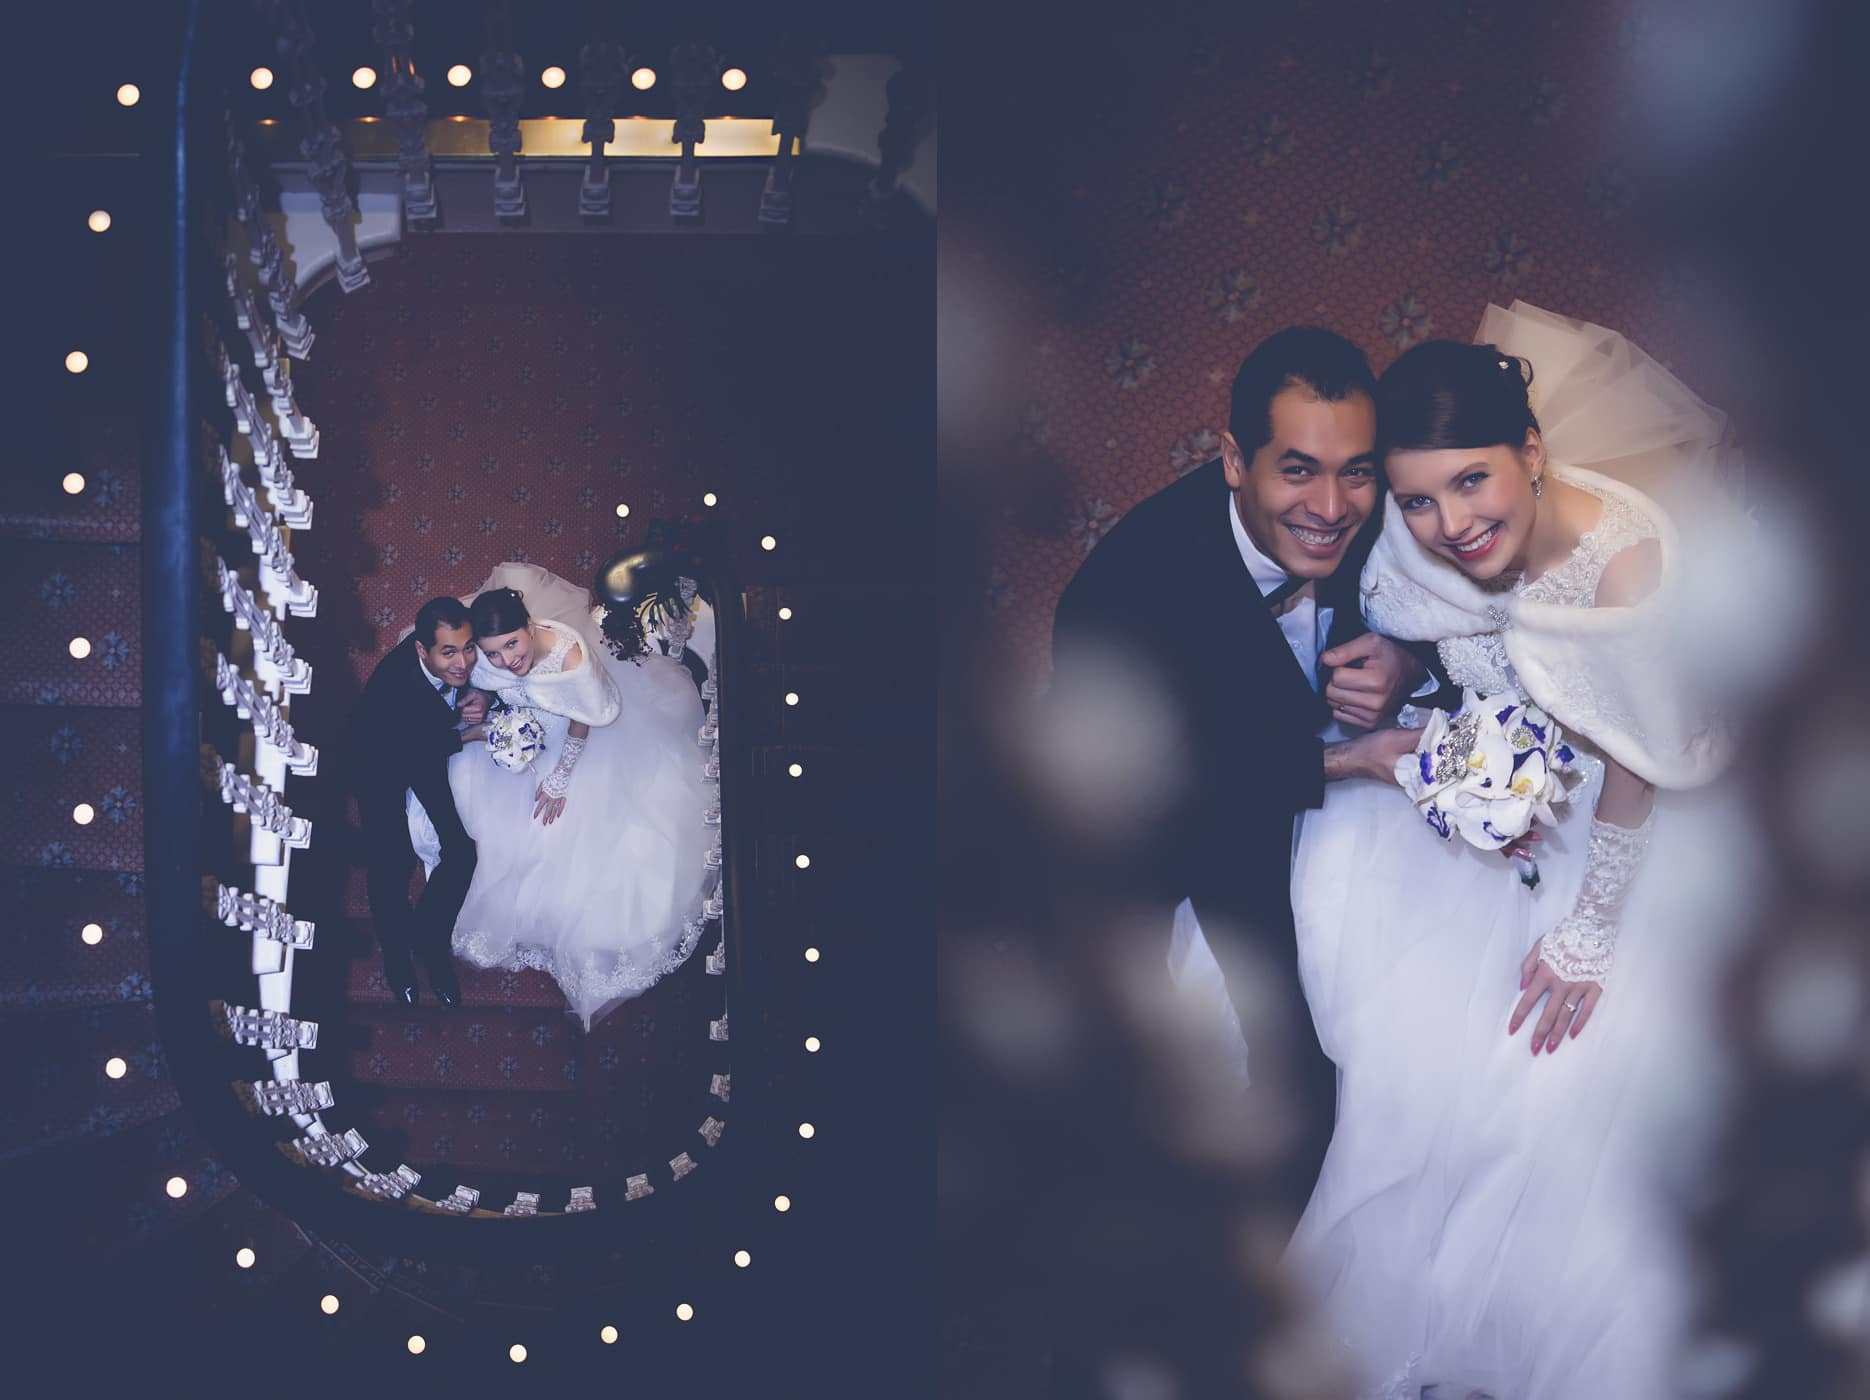 Artistic portrait of the bride and groom in the stair case